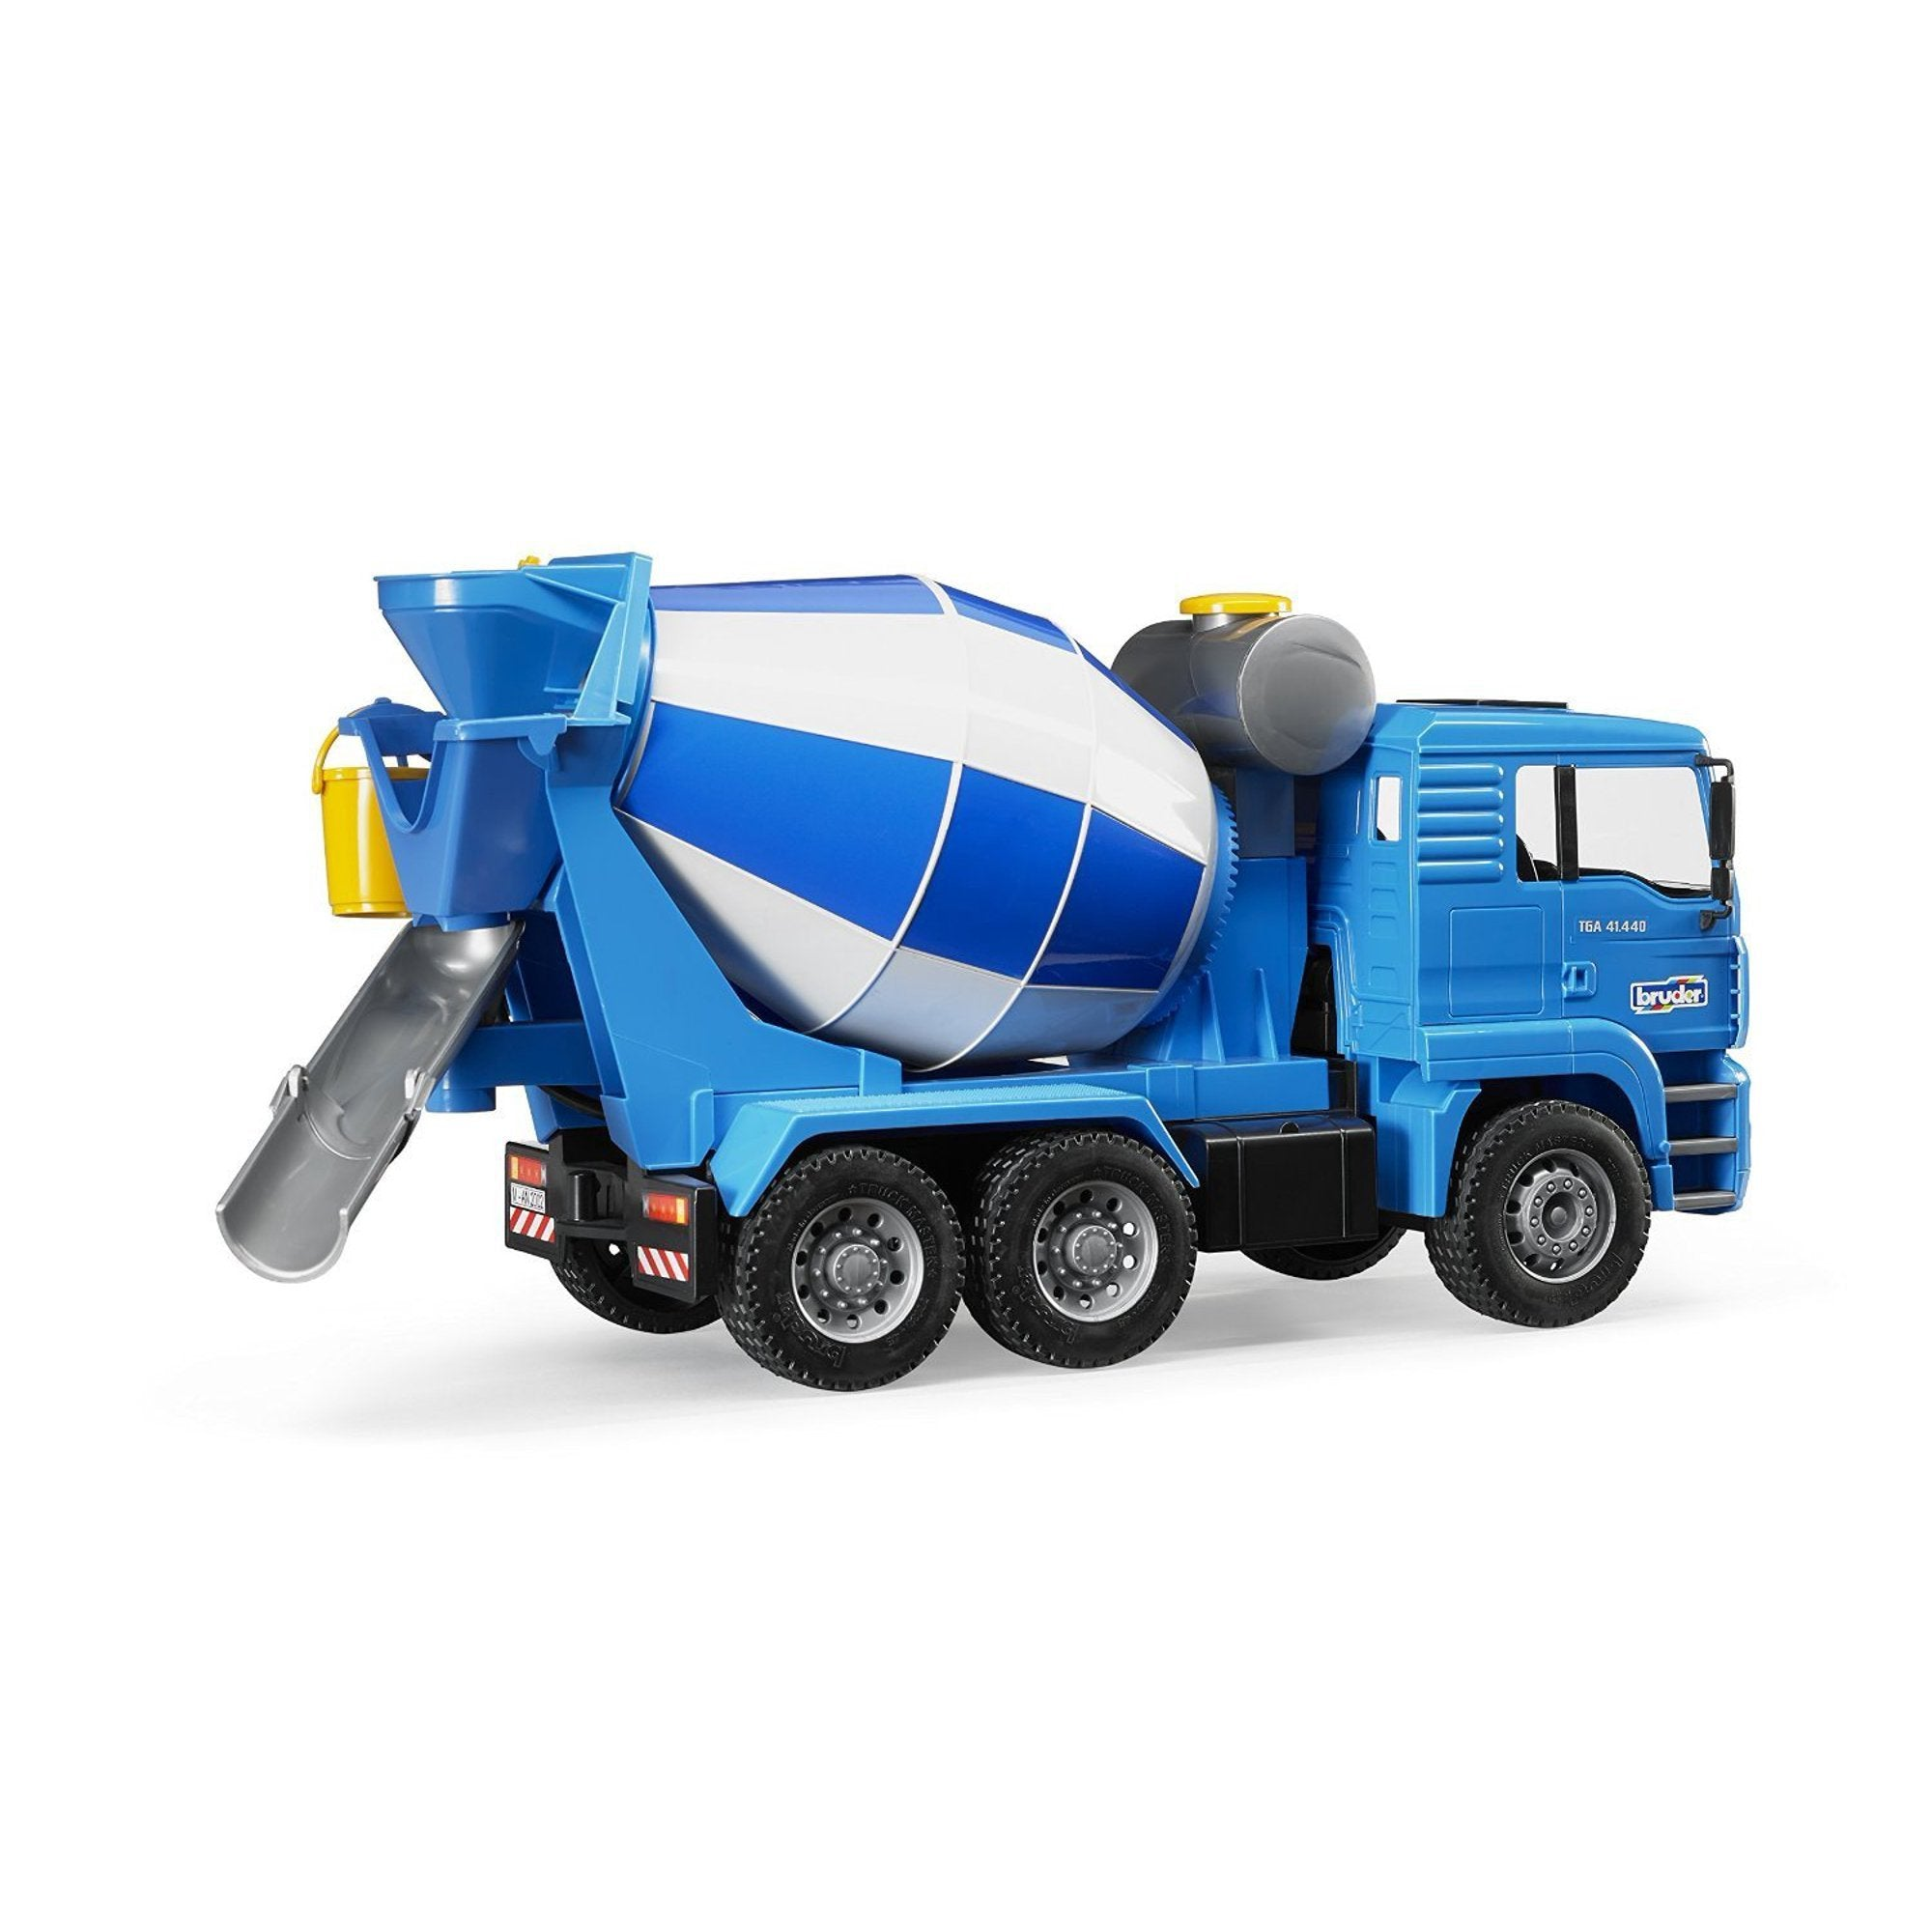 MAN Cement Mixer (02744)